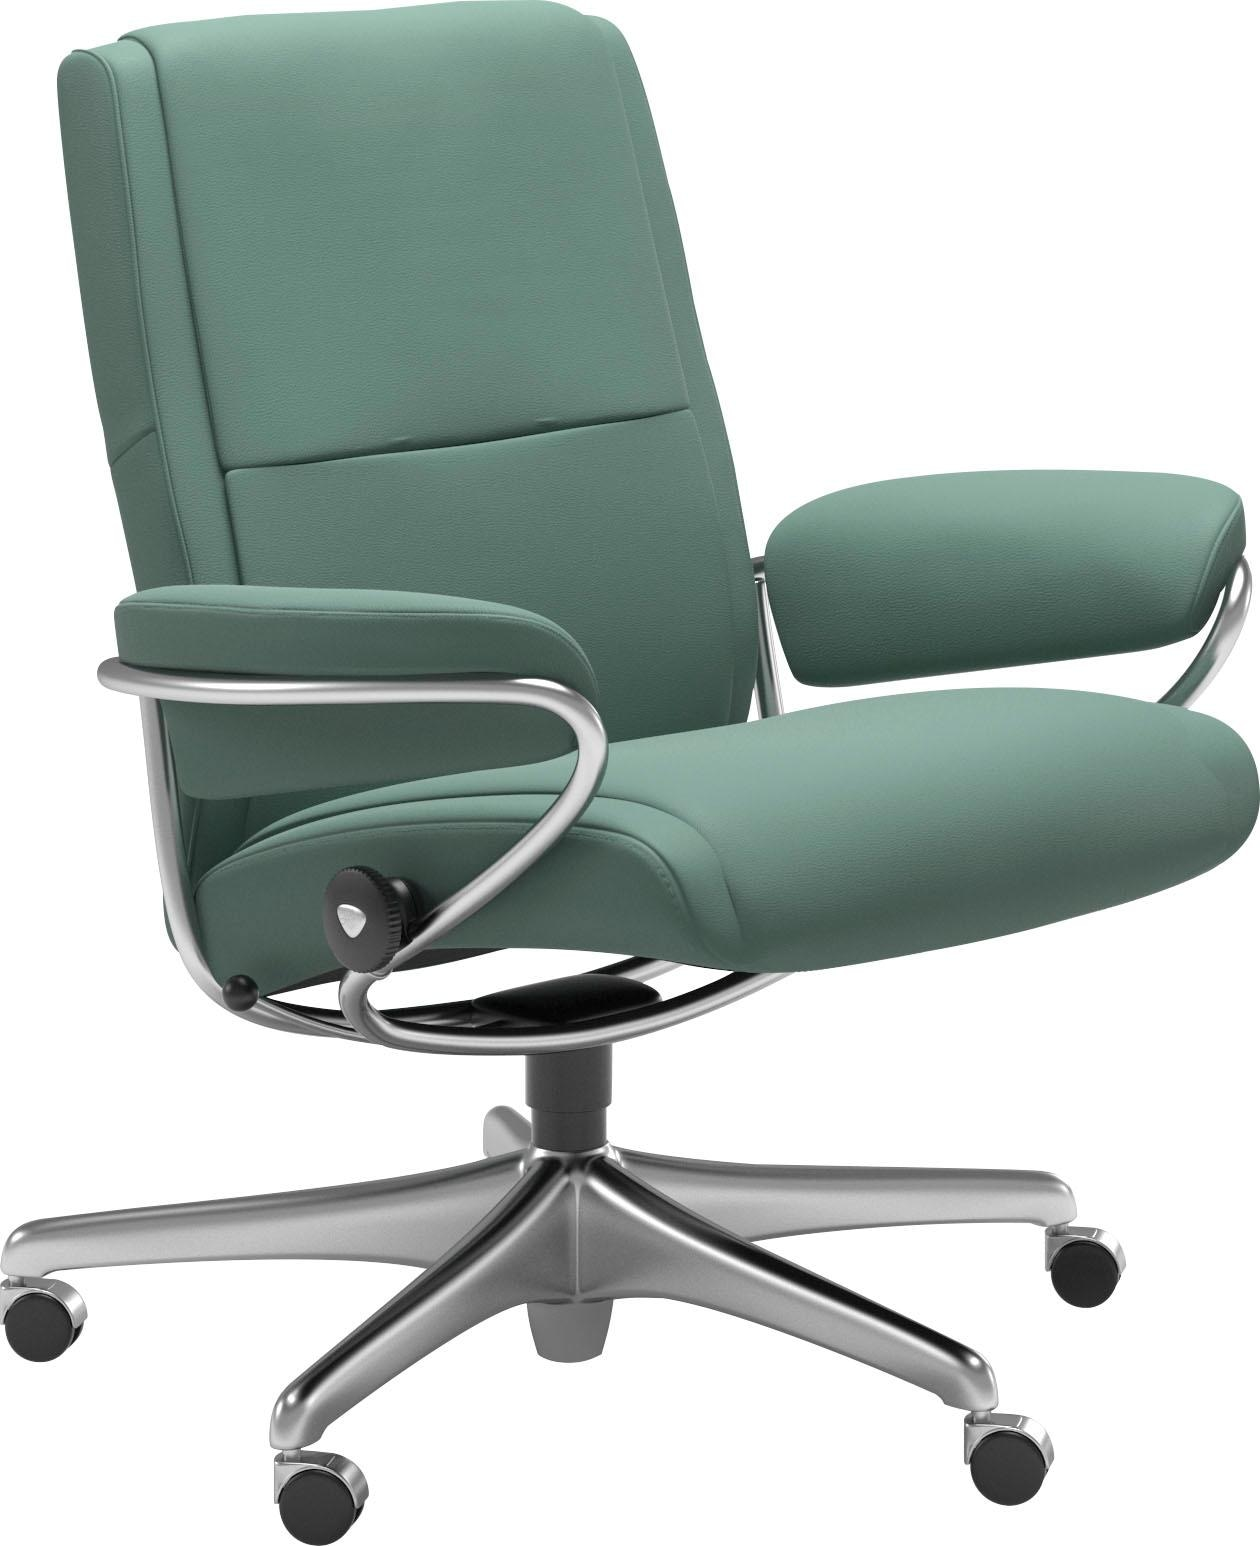 Stressless Relaxsessel Paris Low Back Mit Home Office Base Gestell Chrom Kaufen Baur